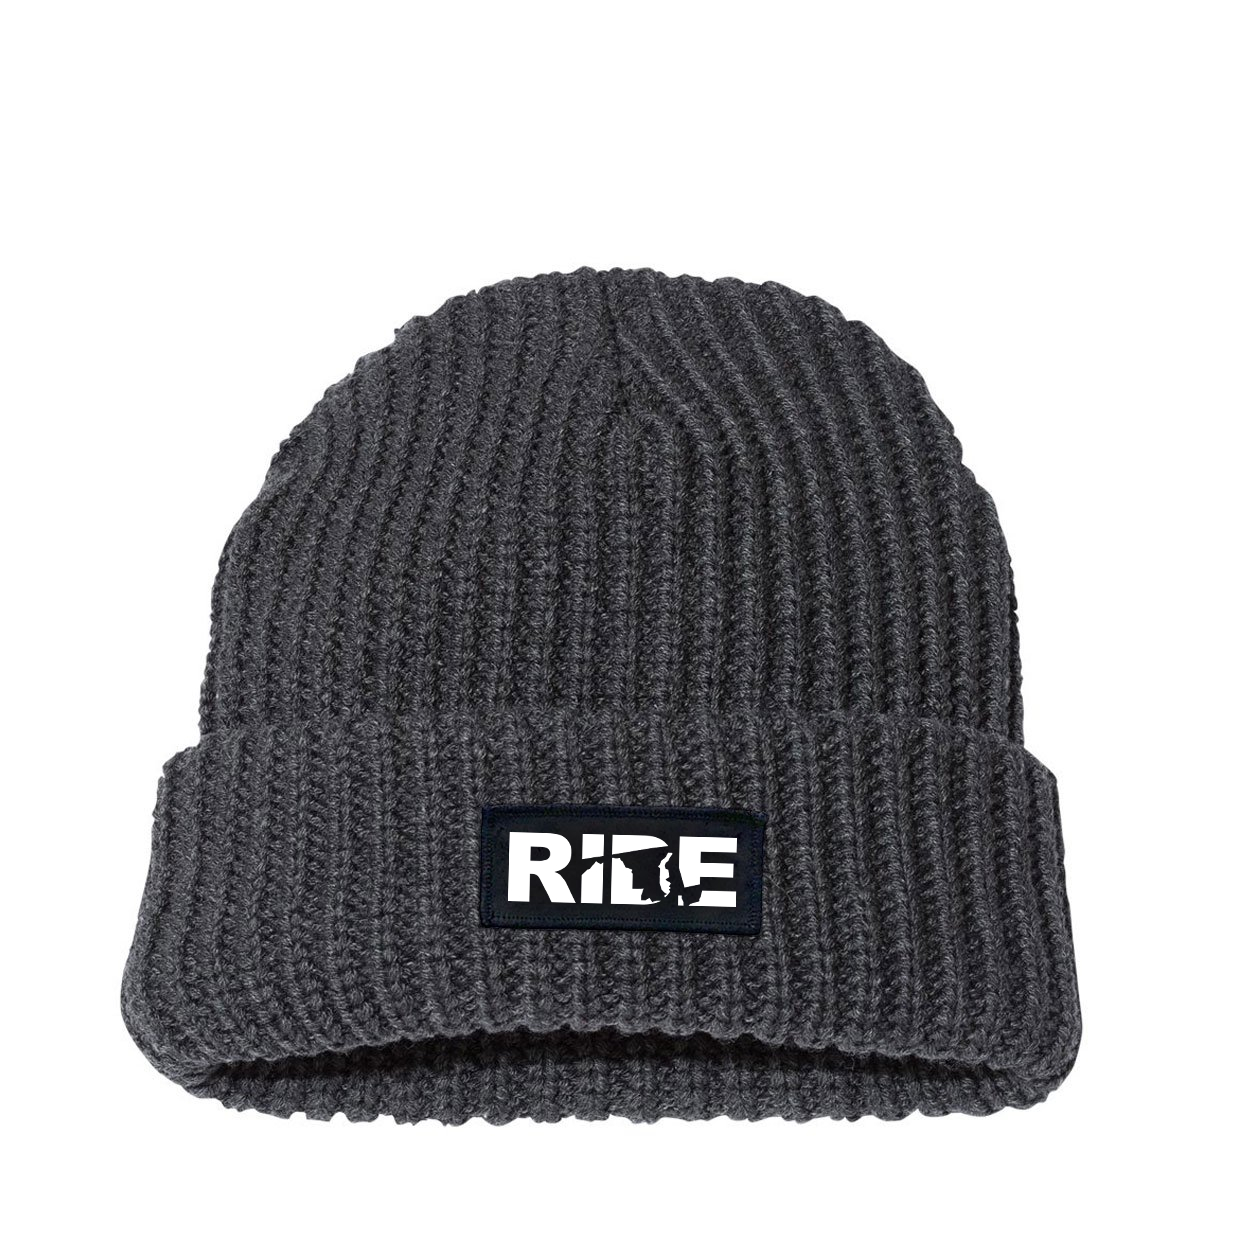 Ride Maryland Night Out Woven Patch Roll Up Jumbo Chunky Knit Beanie Charcoal (White Logo)